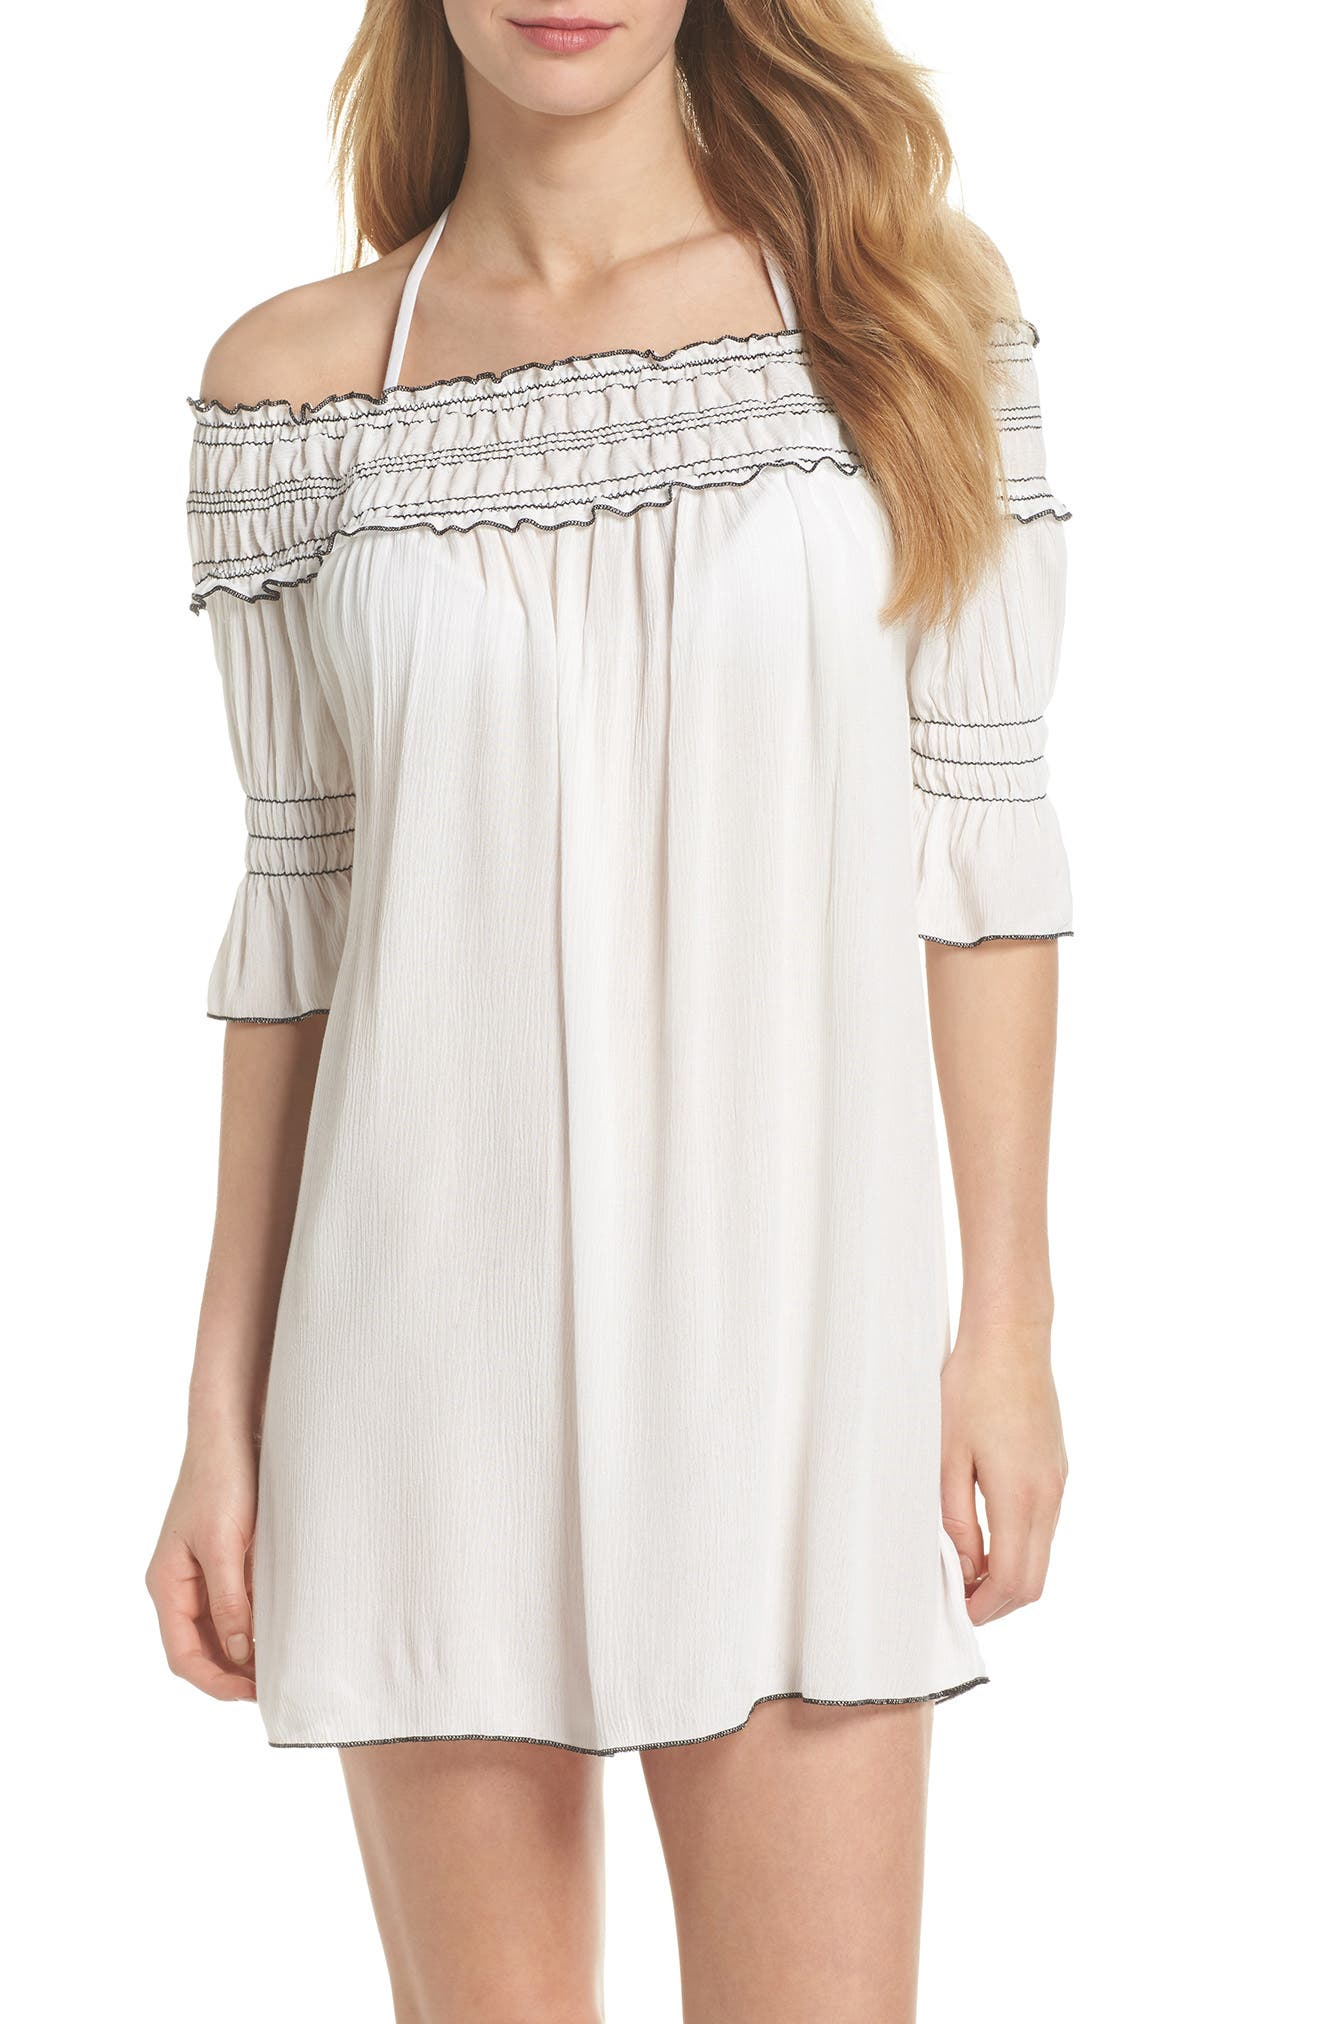 Nightingale Off the Shoulder Cover-Up Dress,                             Main thumbnail 1, color,                             White